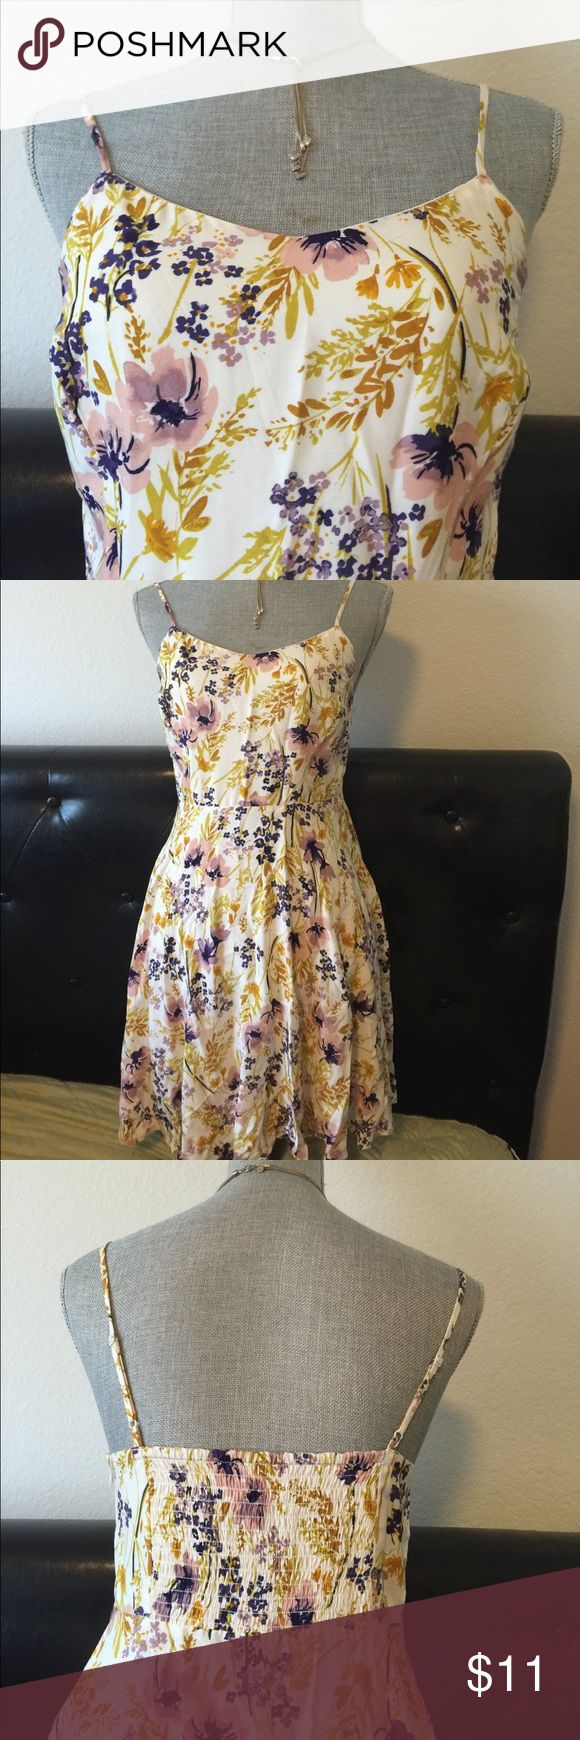 Never worn S petite a line Old navy dress Brand new no tag never worn no defect guarantee!!! 15% off with bundle. What you see you will receive. Old Navy Dresses Mini